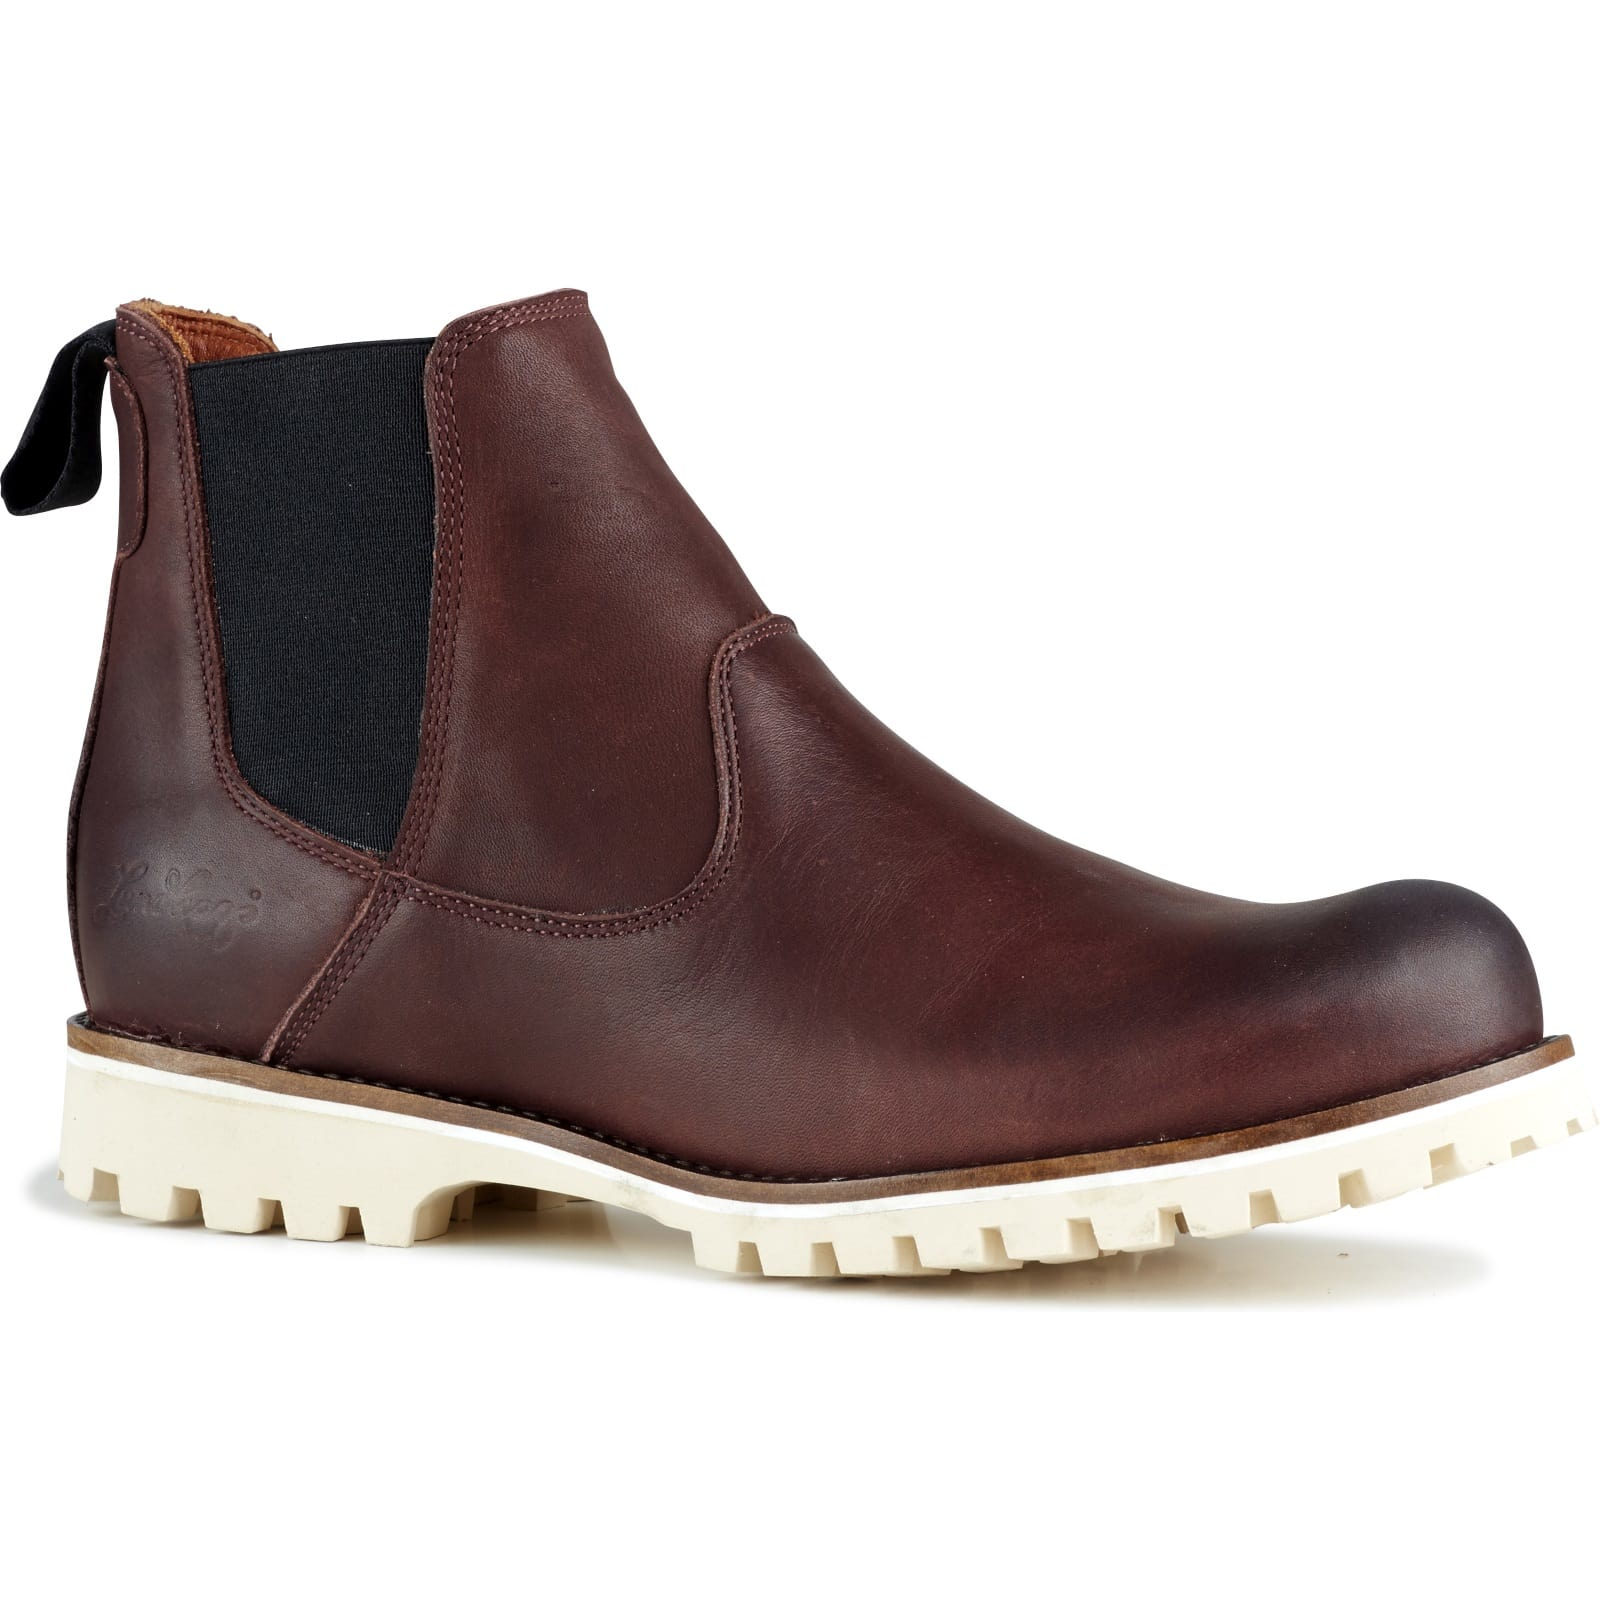 Buy Lundhags Cobbler Boot from Outnorth 077deb801f